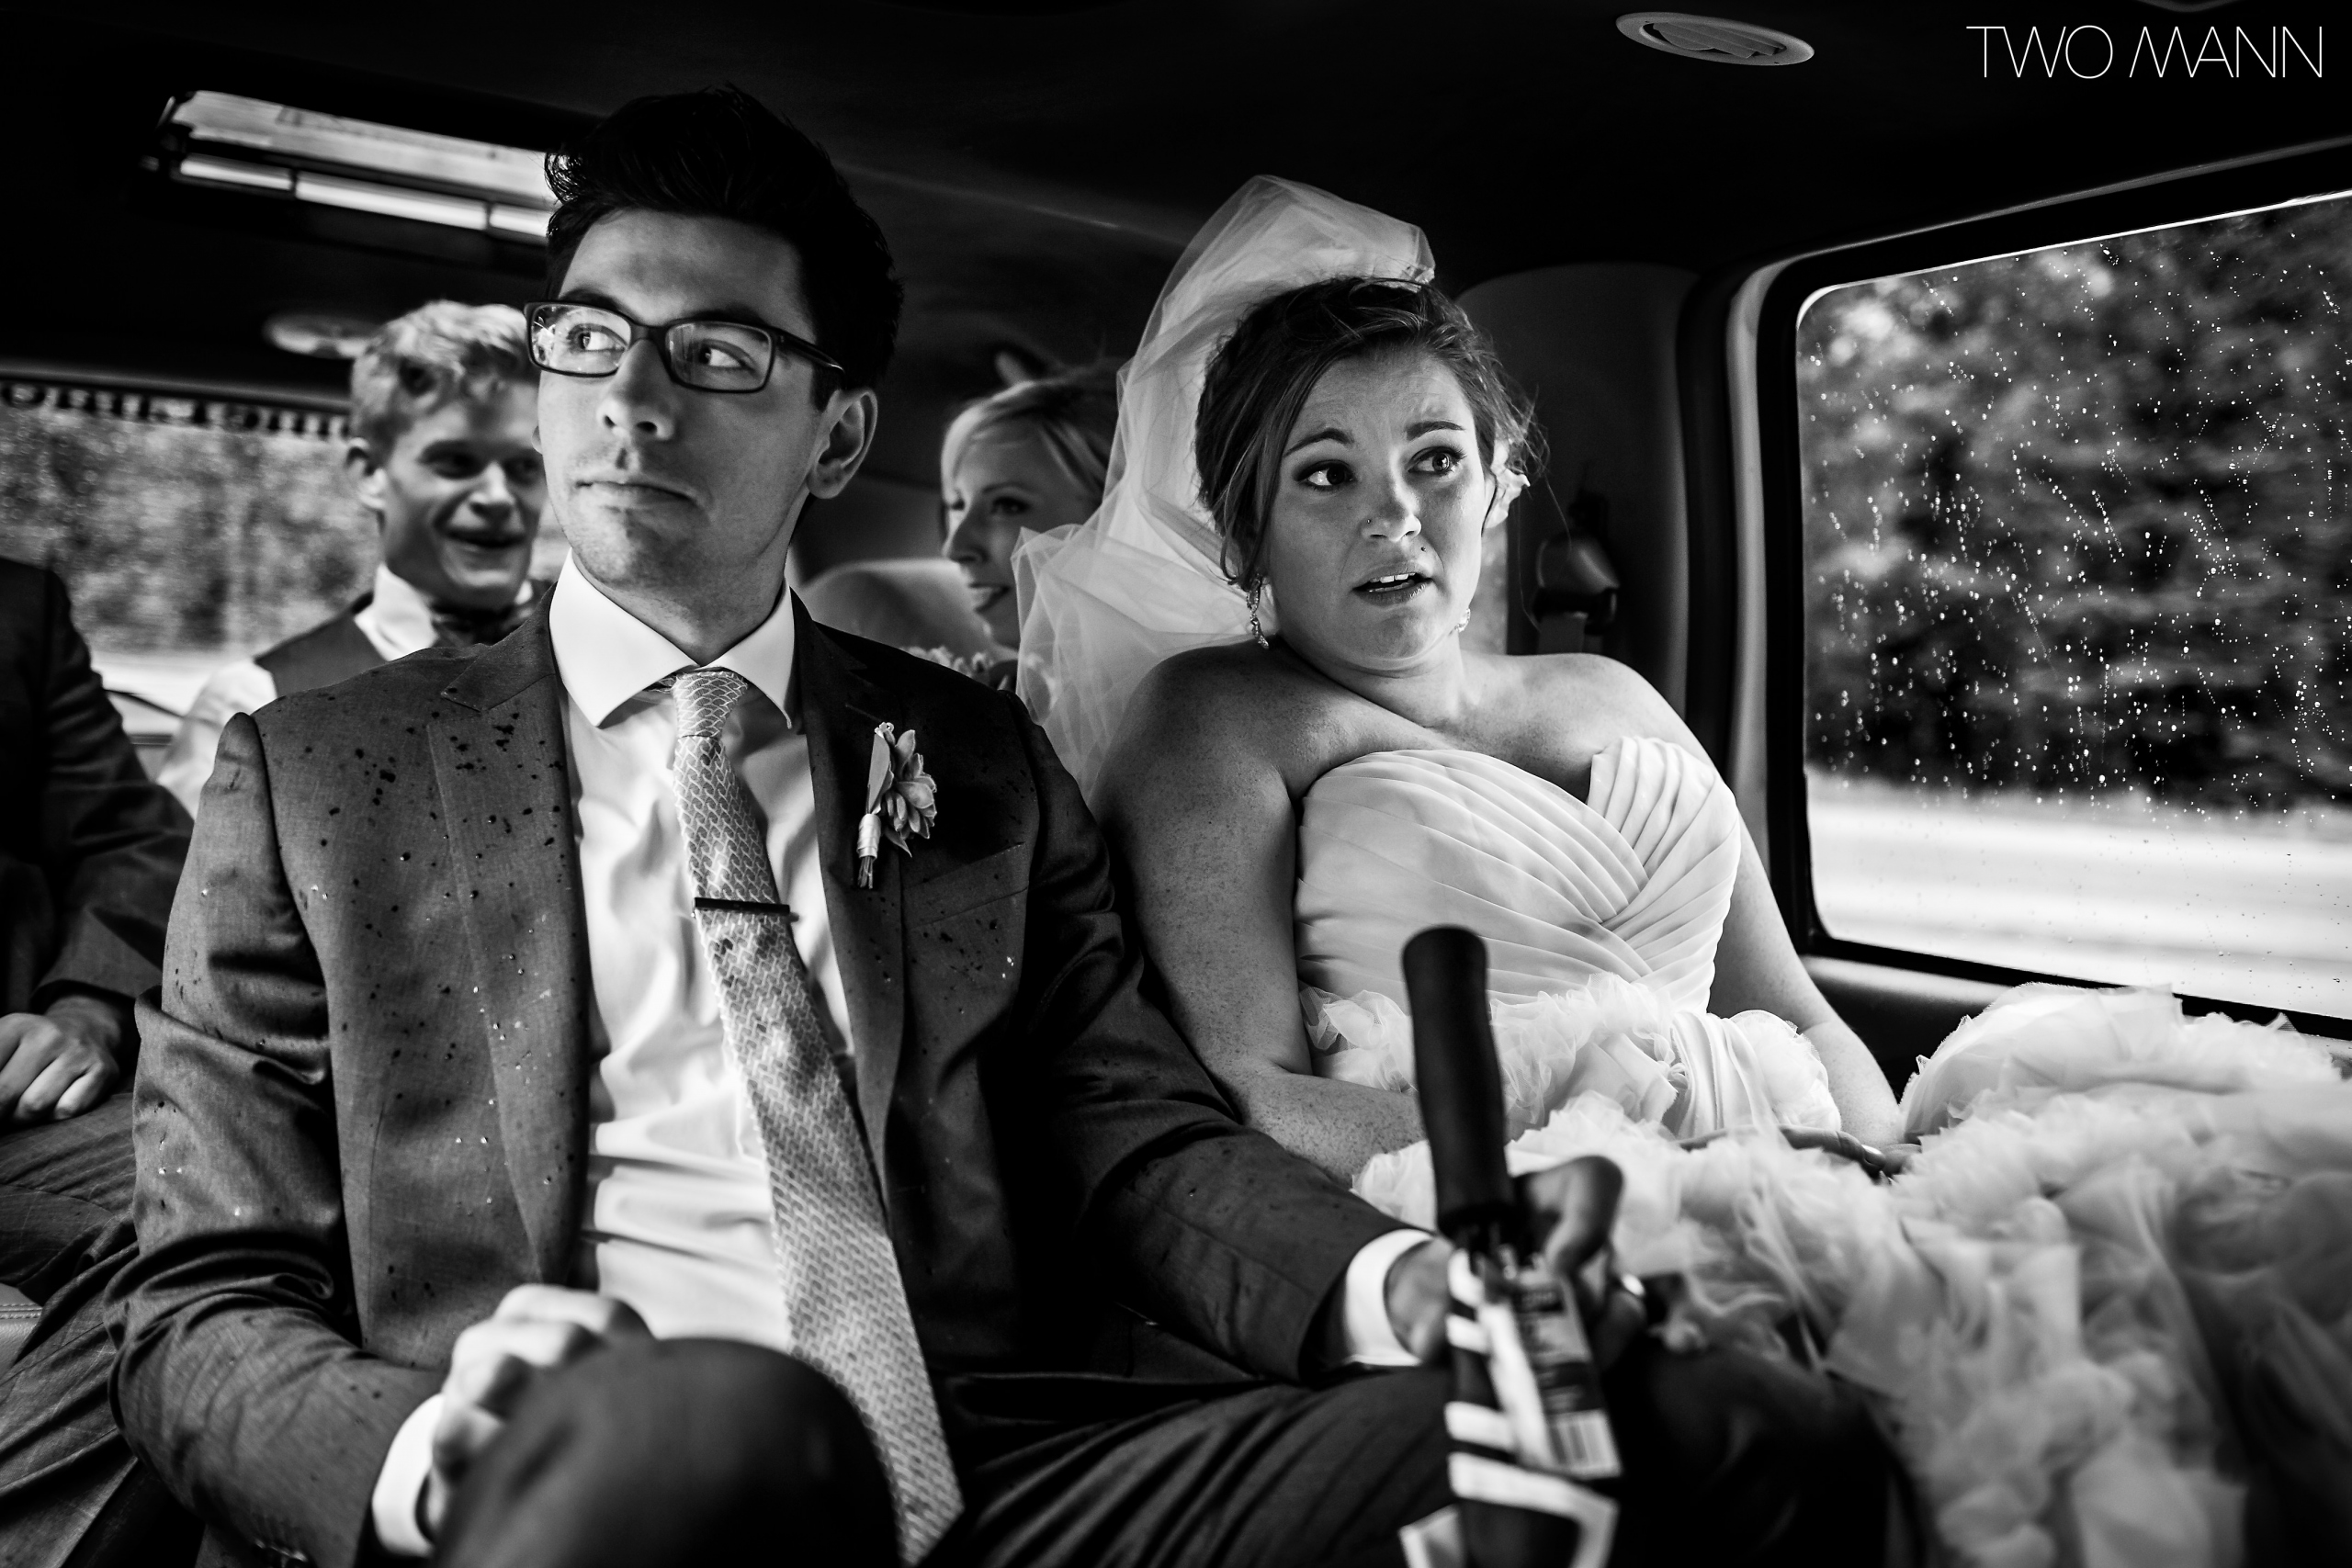 canmore-wedding-photography-two-mann-sabin-steph-22